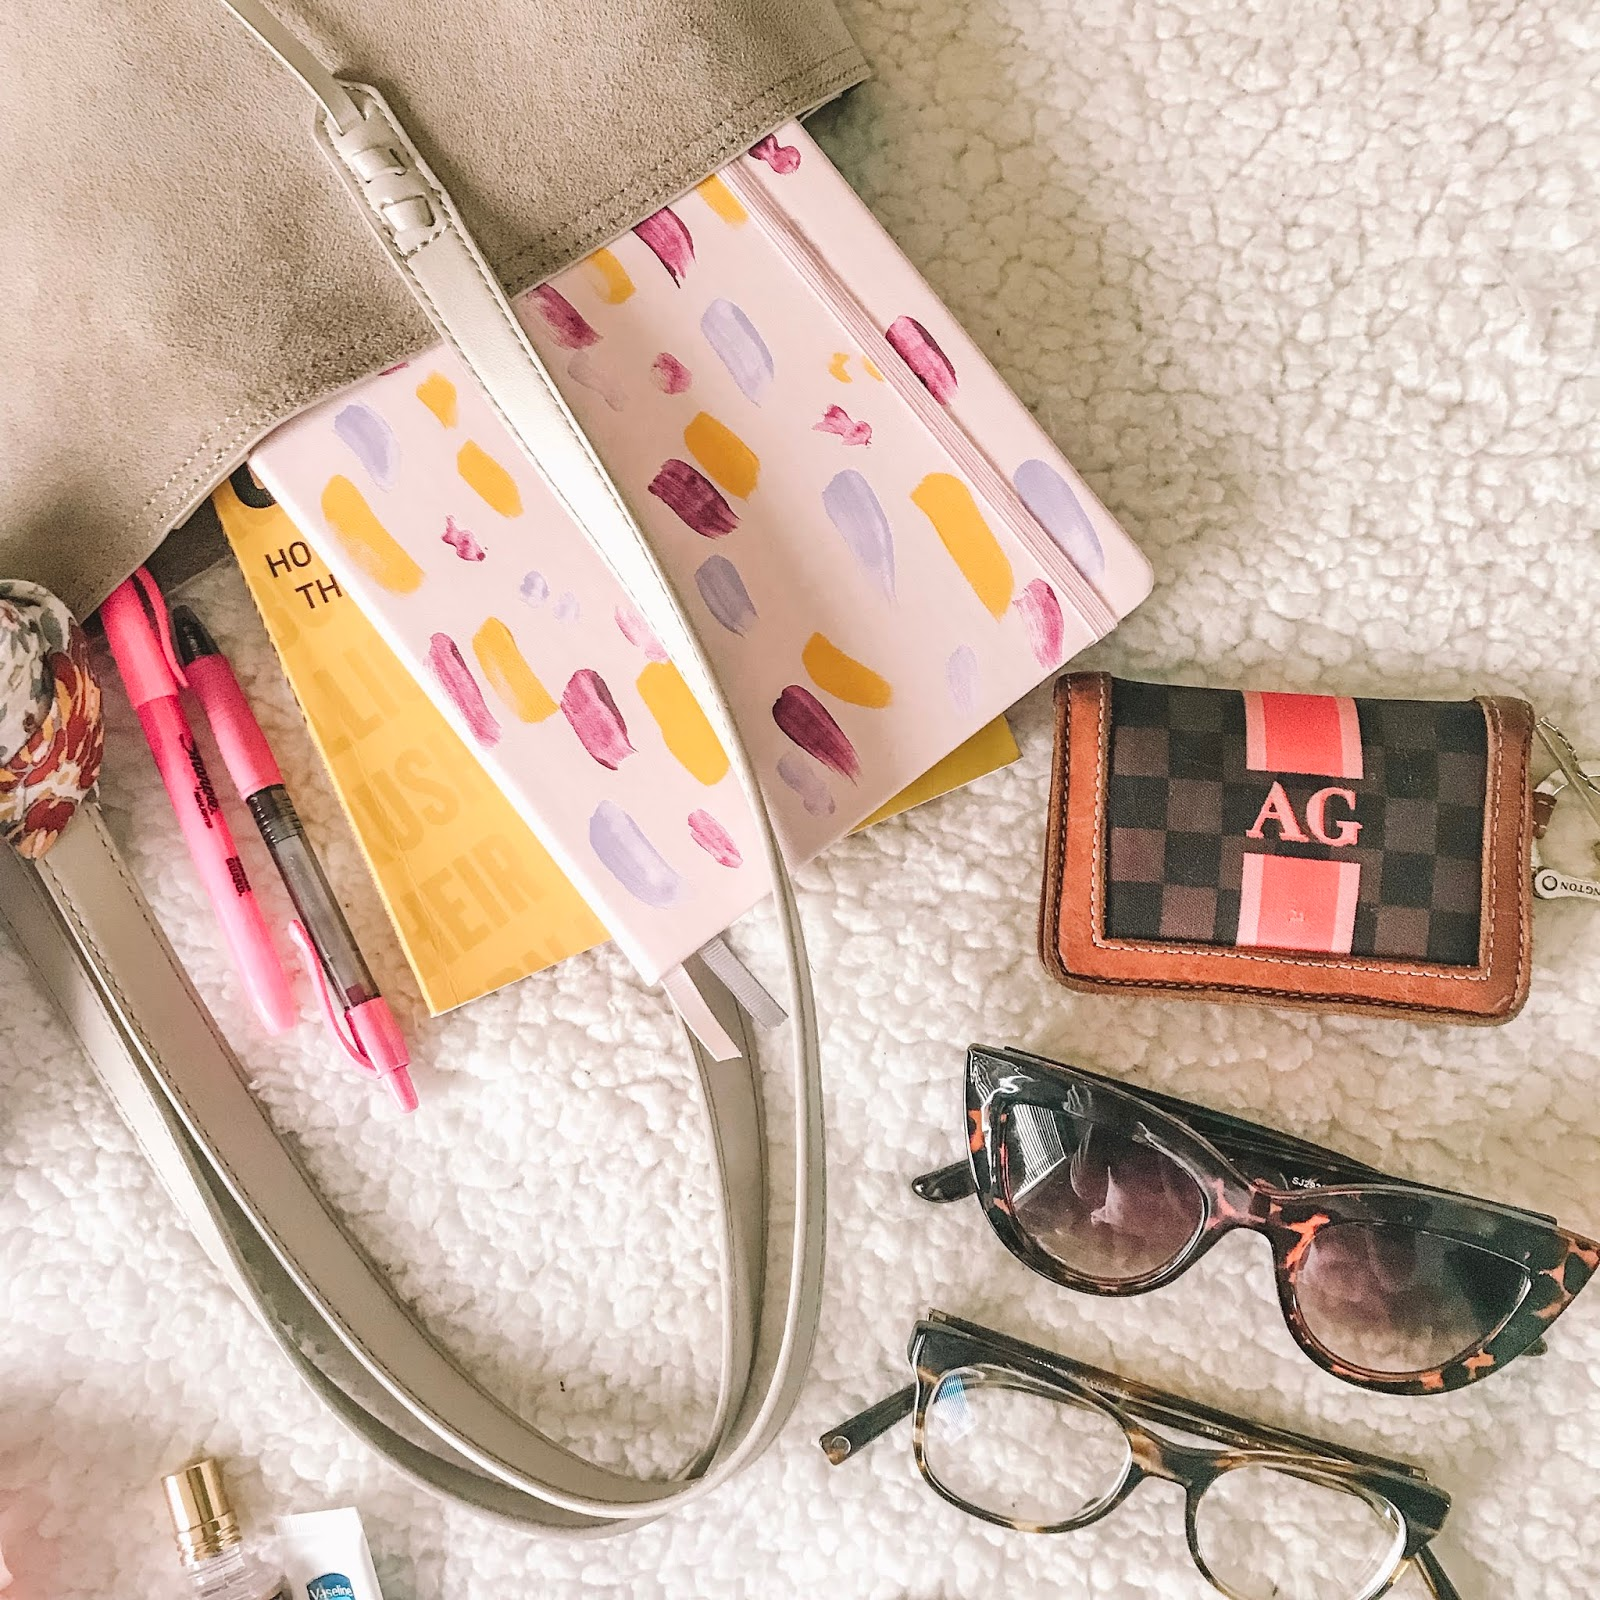 books, recommendations, wallet, glasses